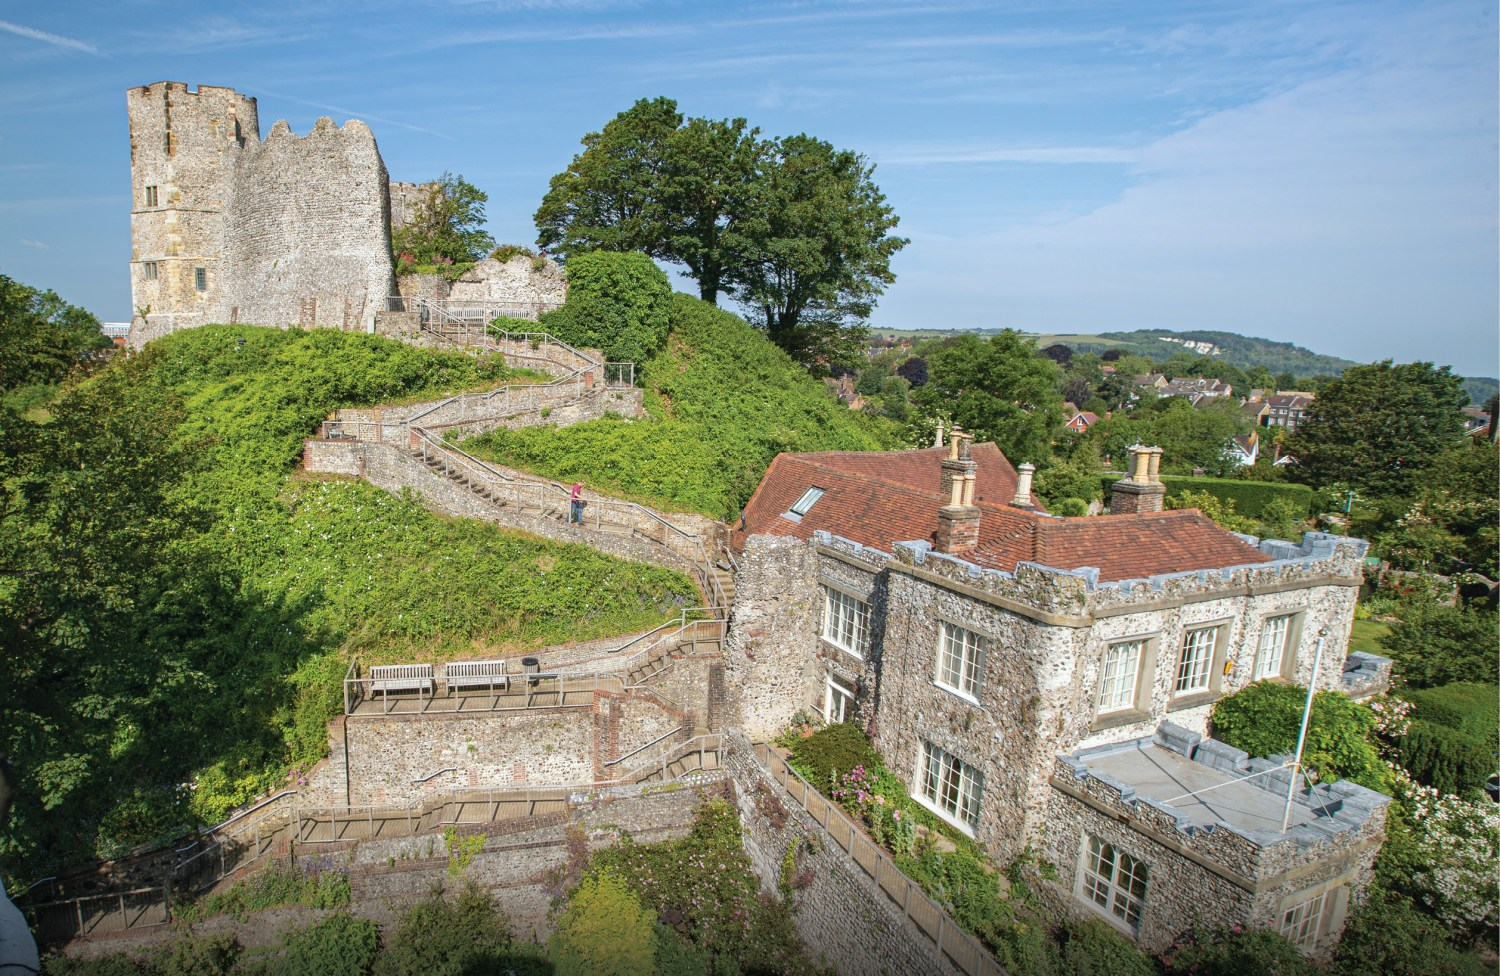 BELOW Overlooking Lewes Castle, which the Sussex Archaeological Society acquired in 1922 after renting the site for over 70 years.